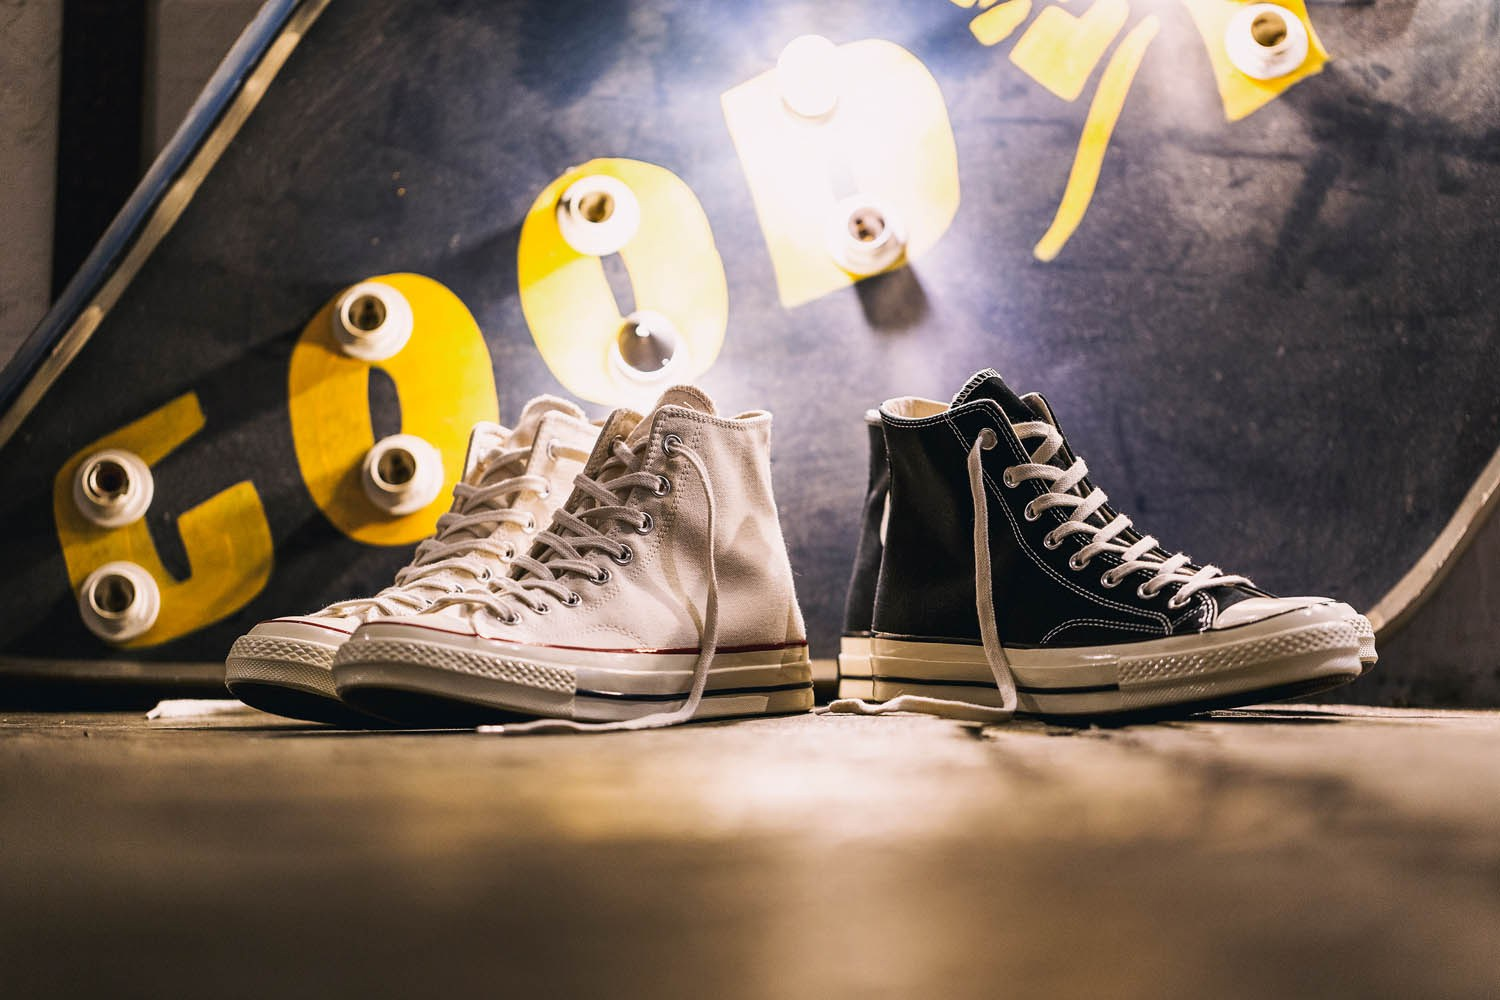 converse-shows-its-colors-with-its-latest-chuck-taylor-all-star-70s-release-10